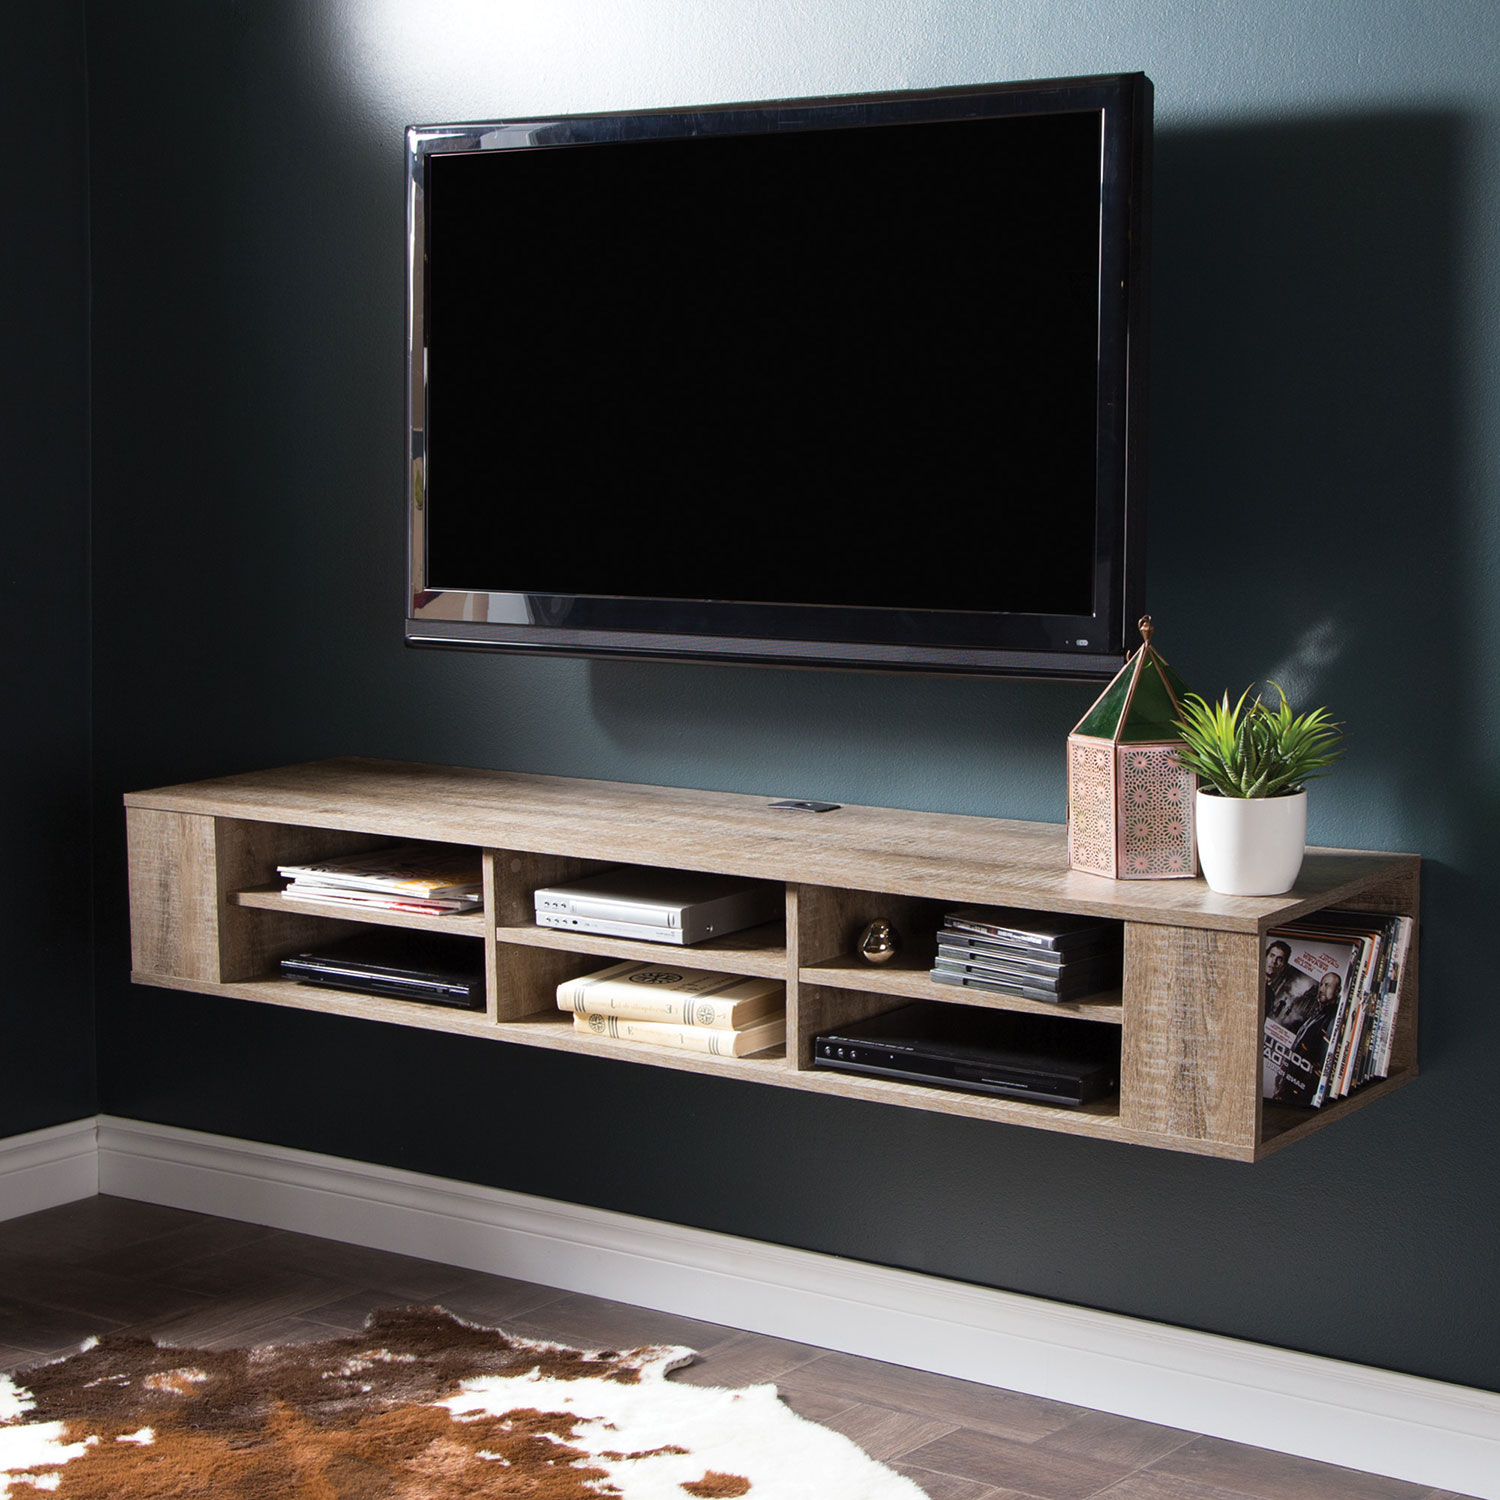 Peachy South Shore 65 Tv Console Wall Mount Weathered Oak Tv Stands Inspirational Interior Design Netriciaus